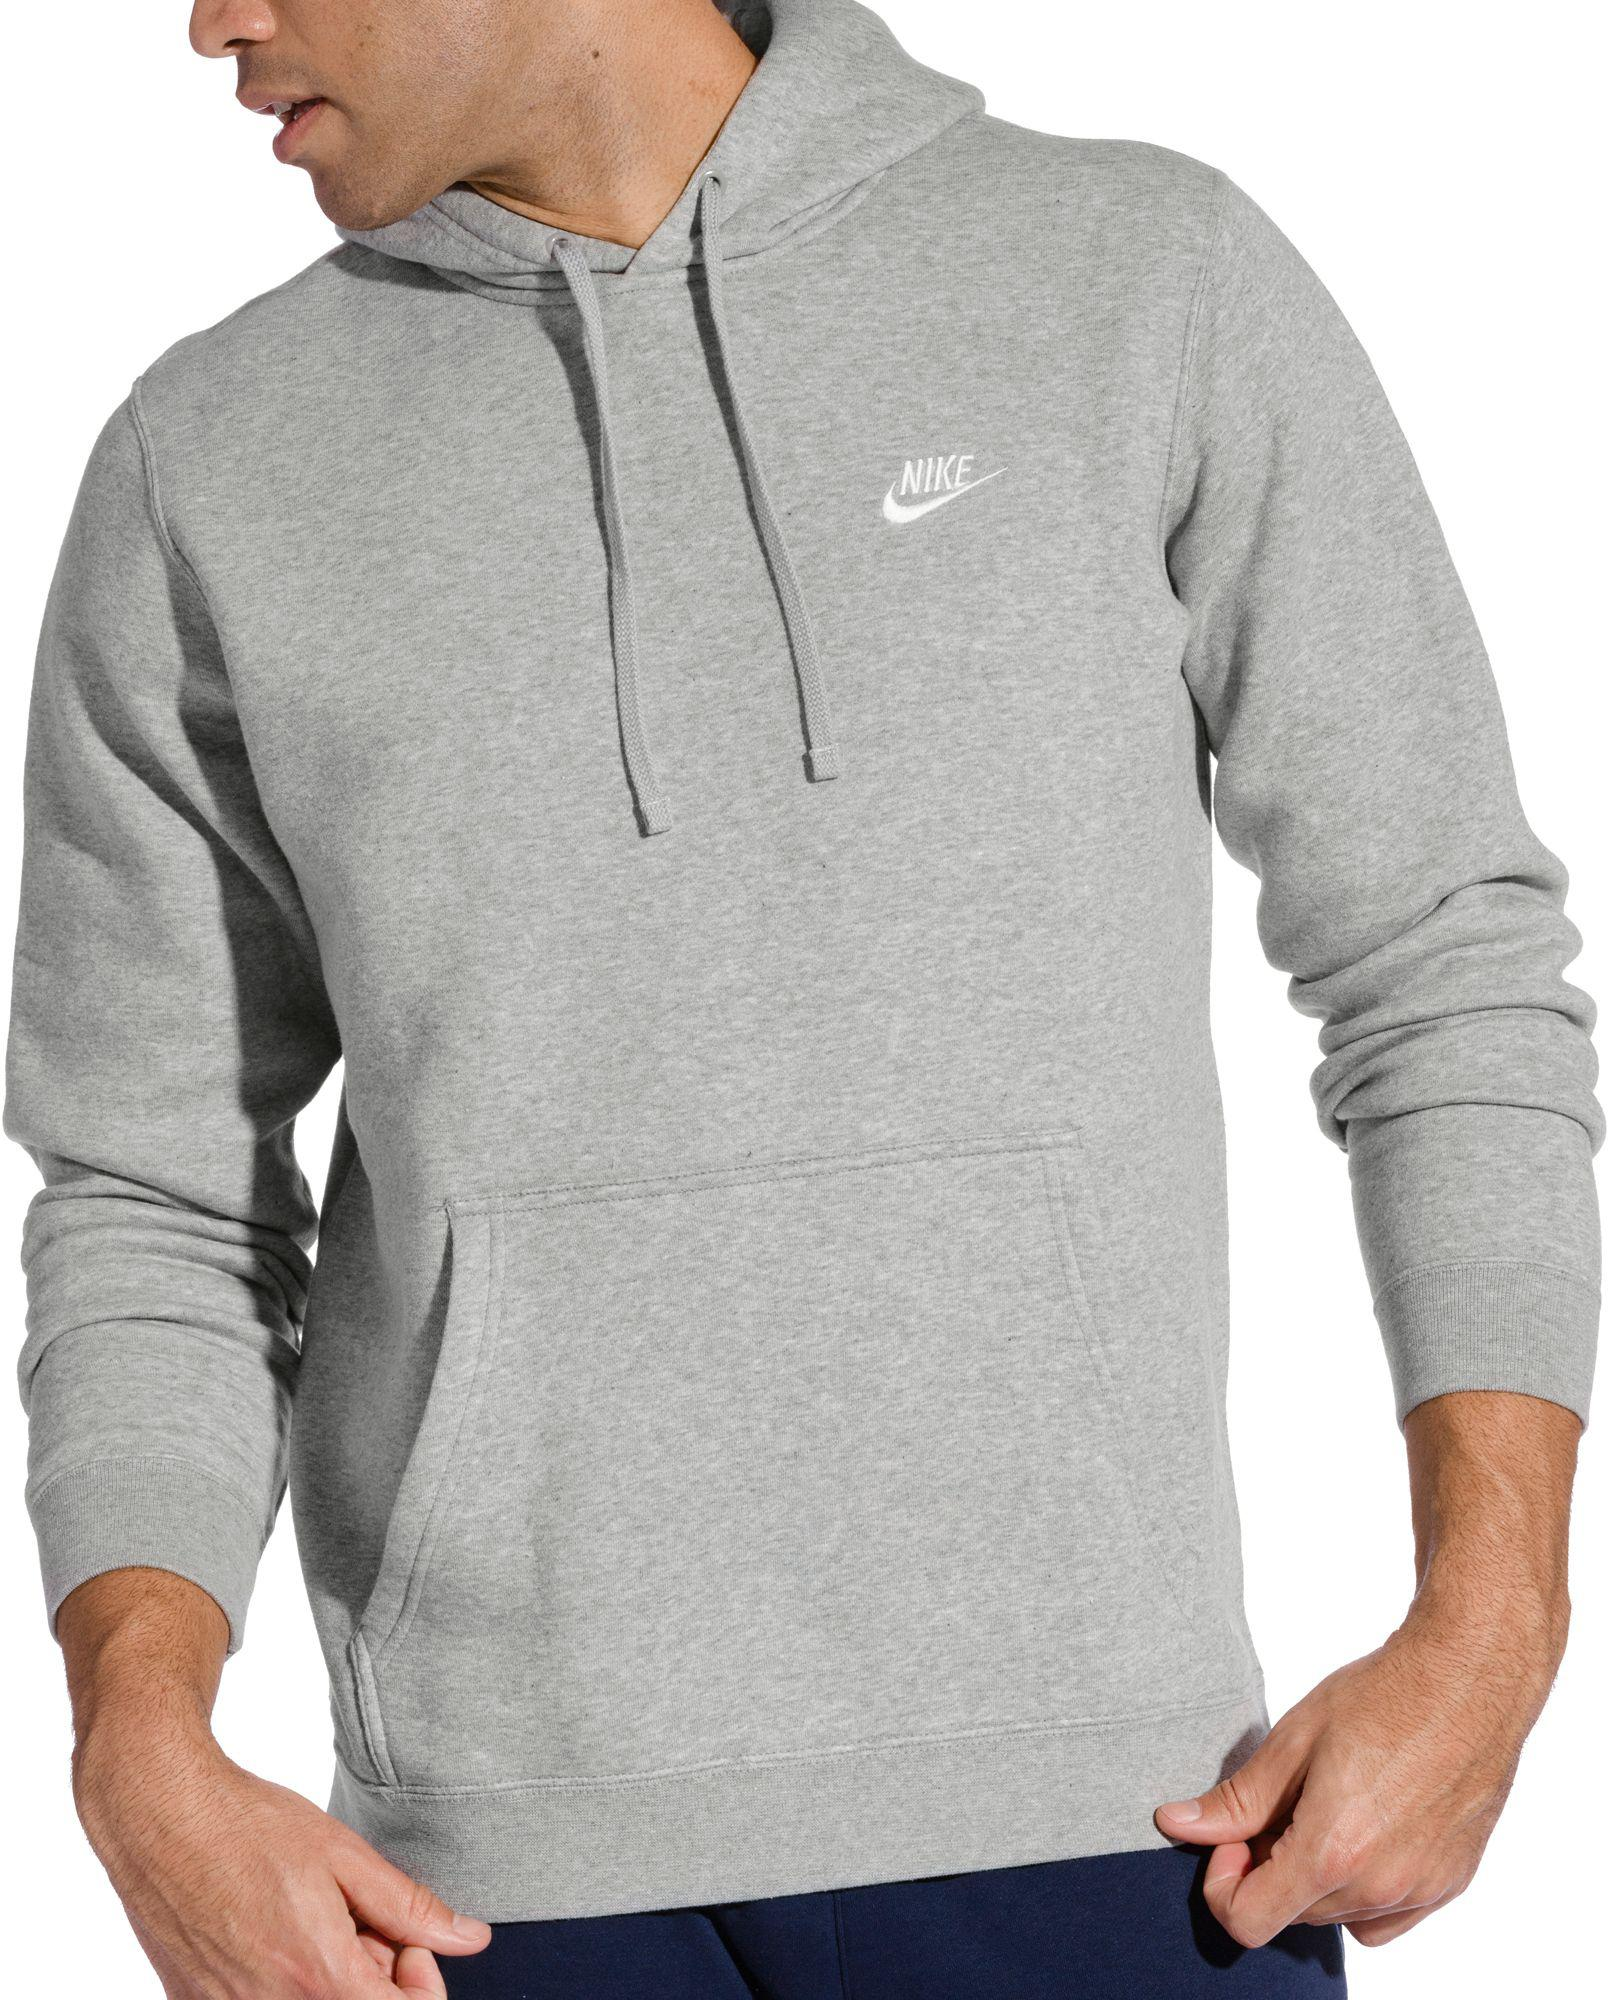 40a5ece02bcc Lyst - Nike Club Fleece Pullover Hoodie in Gray for Men